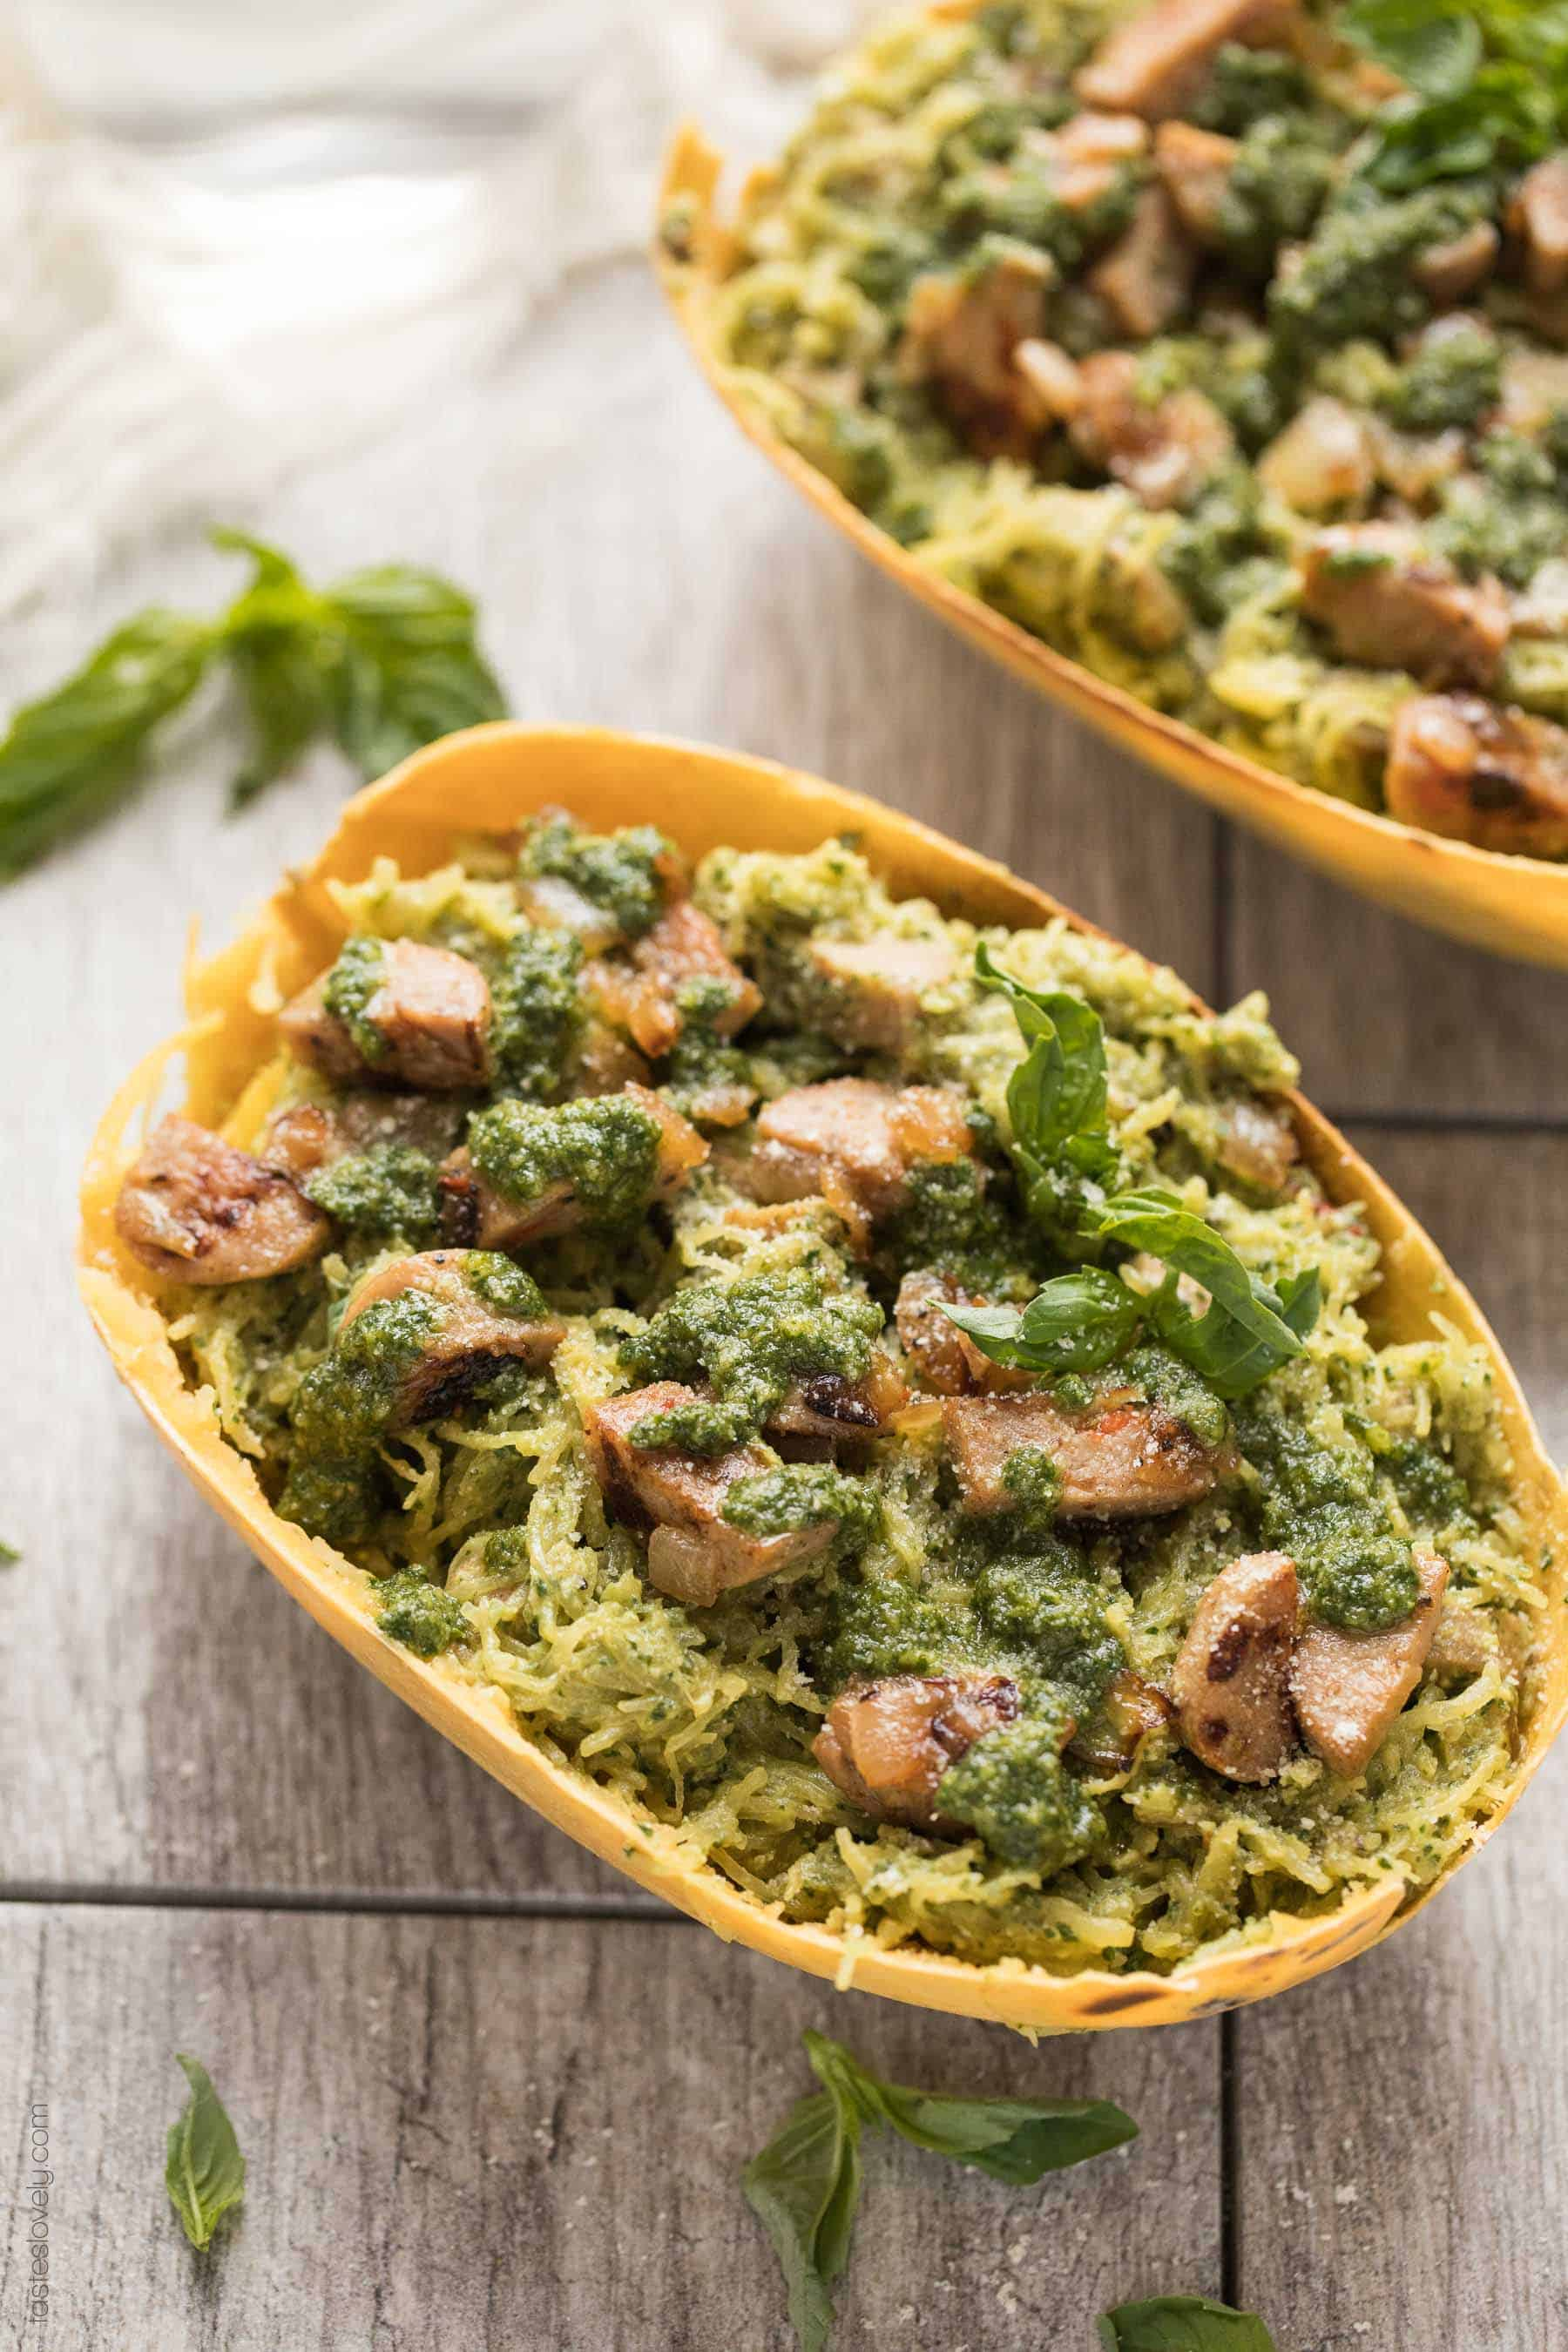 Spaghetti Squash with Sausage & Pesto (Paleo, Whole30) - a simple and delicious gluten free pasta recipe!